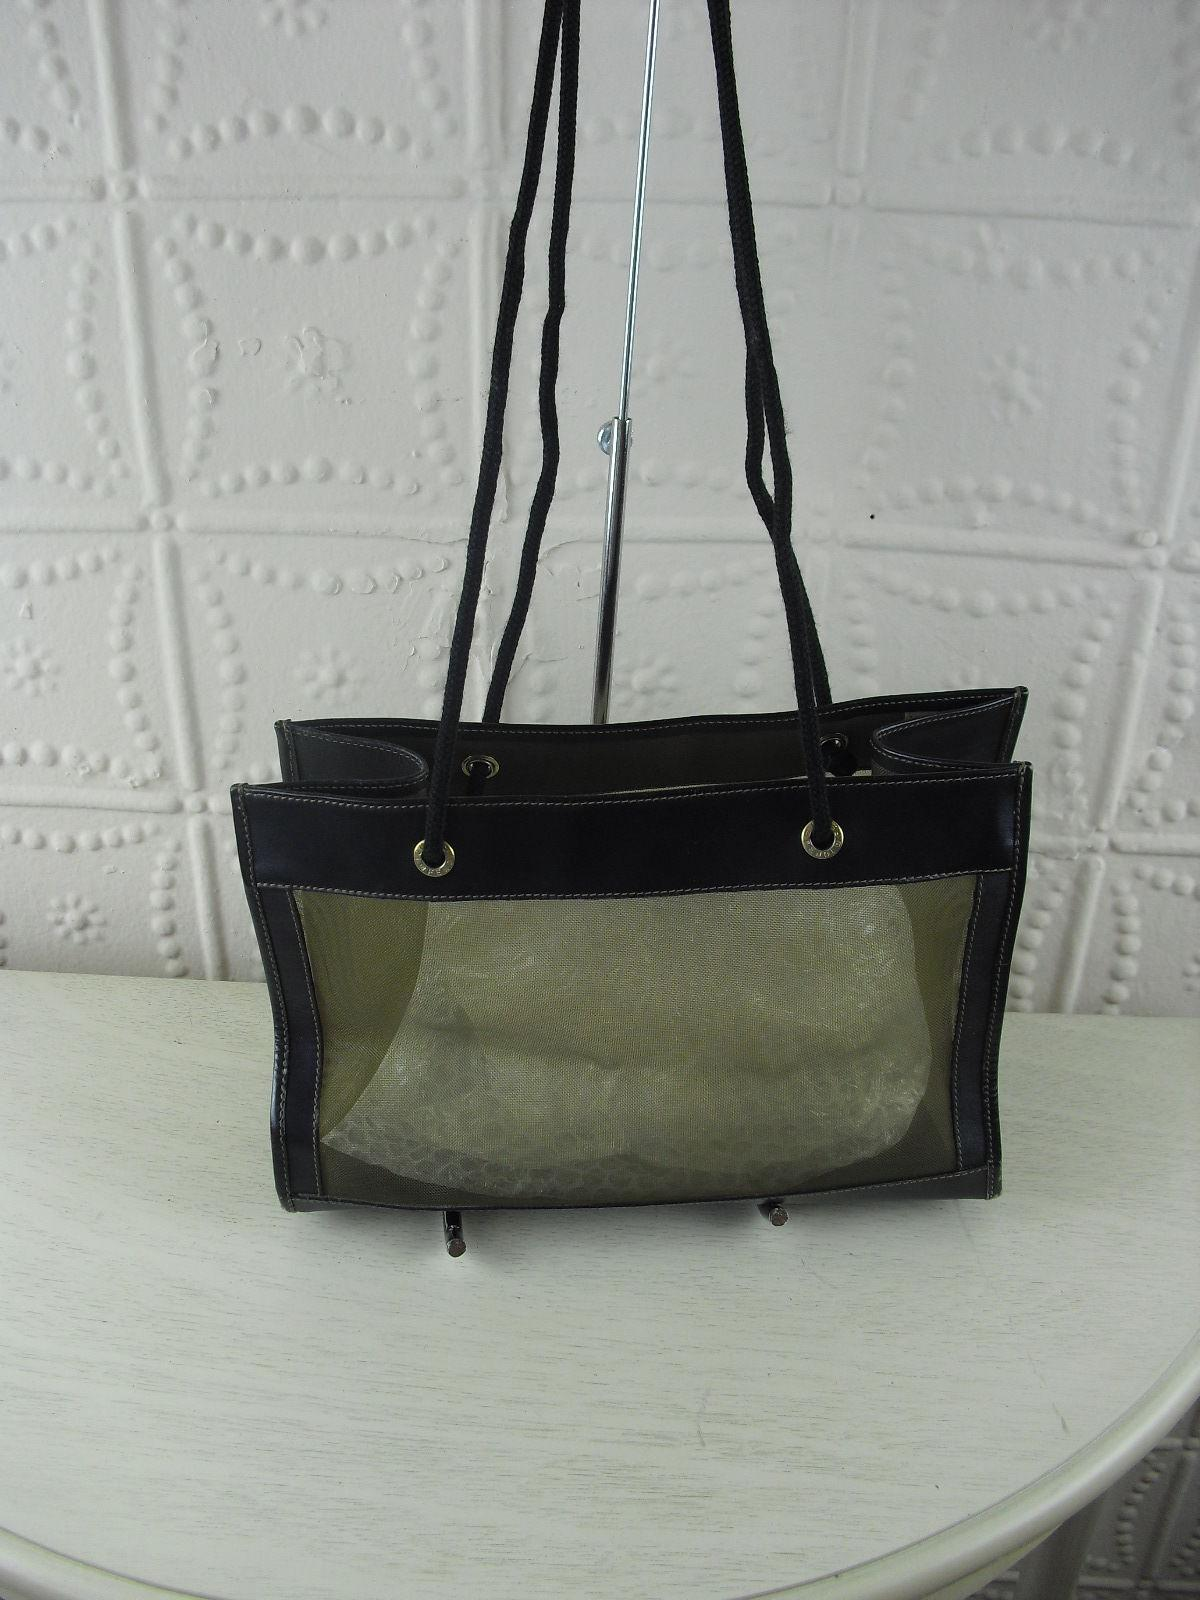 923e51ee6e34 ... discount code for fendi bag.perfect for the beach or pool shoulder bag  ac9ff ae41f